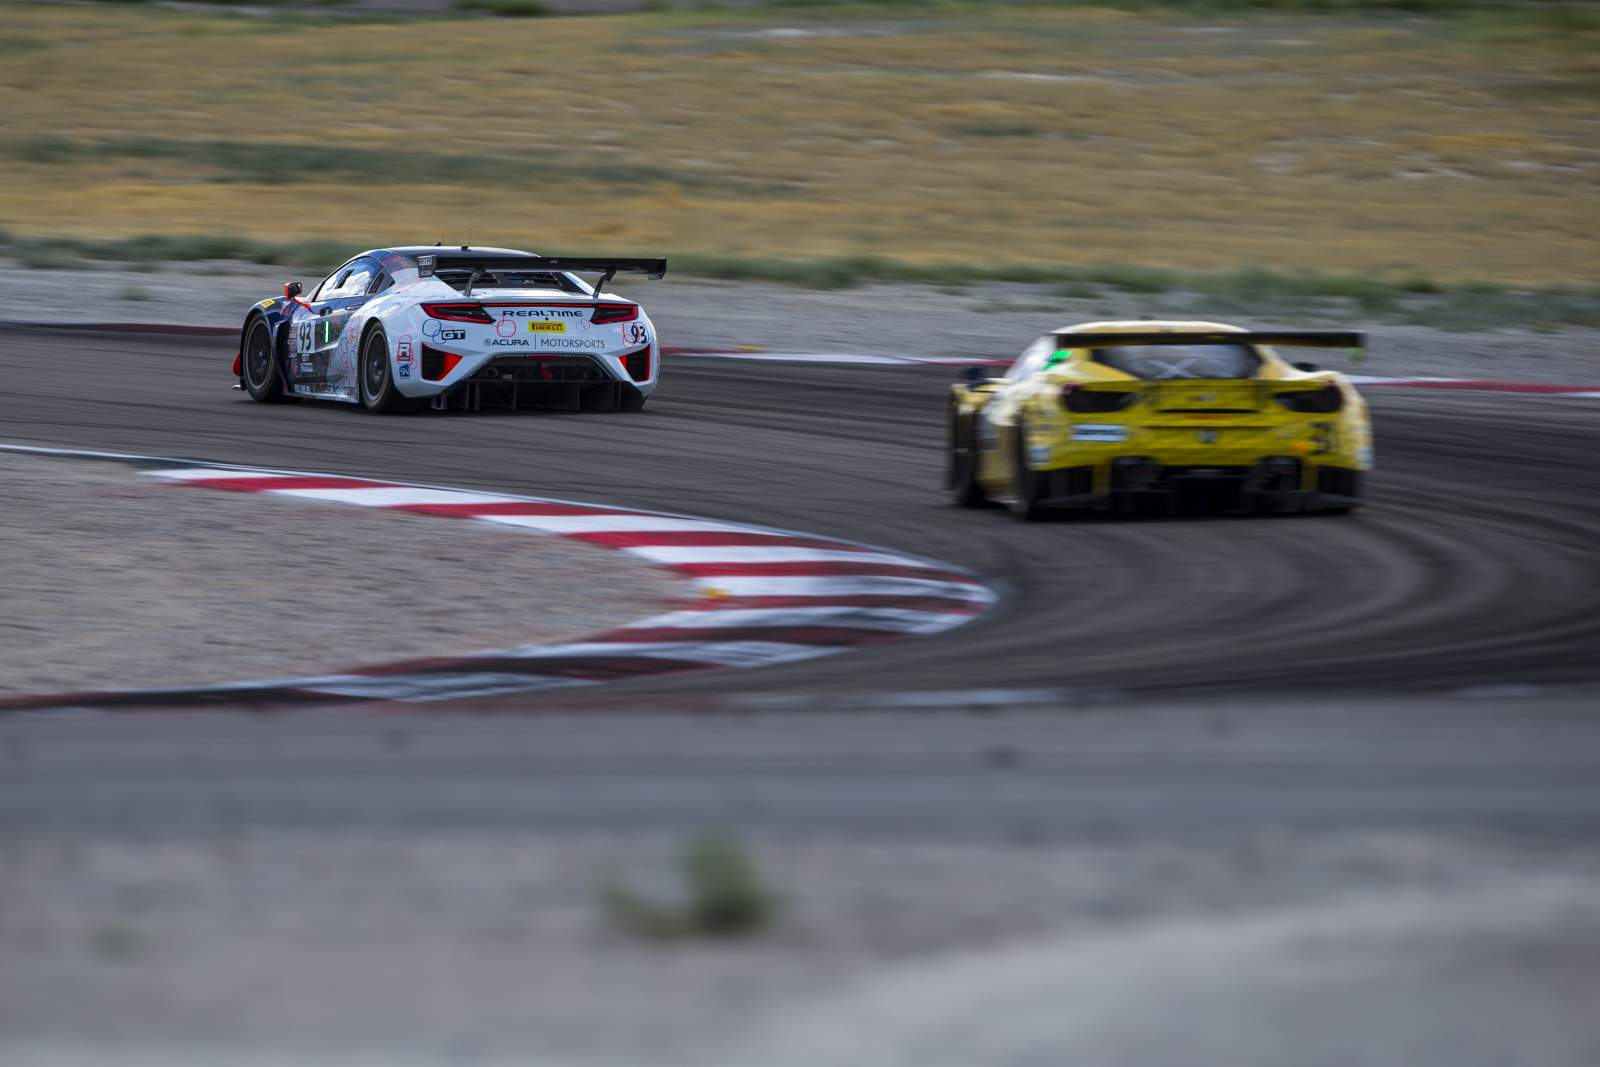 peter-kox-realtime-racing-pirelli-world-challenge-utah-motorsport-campus--123